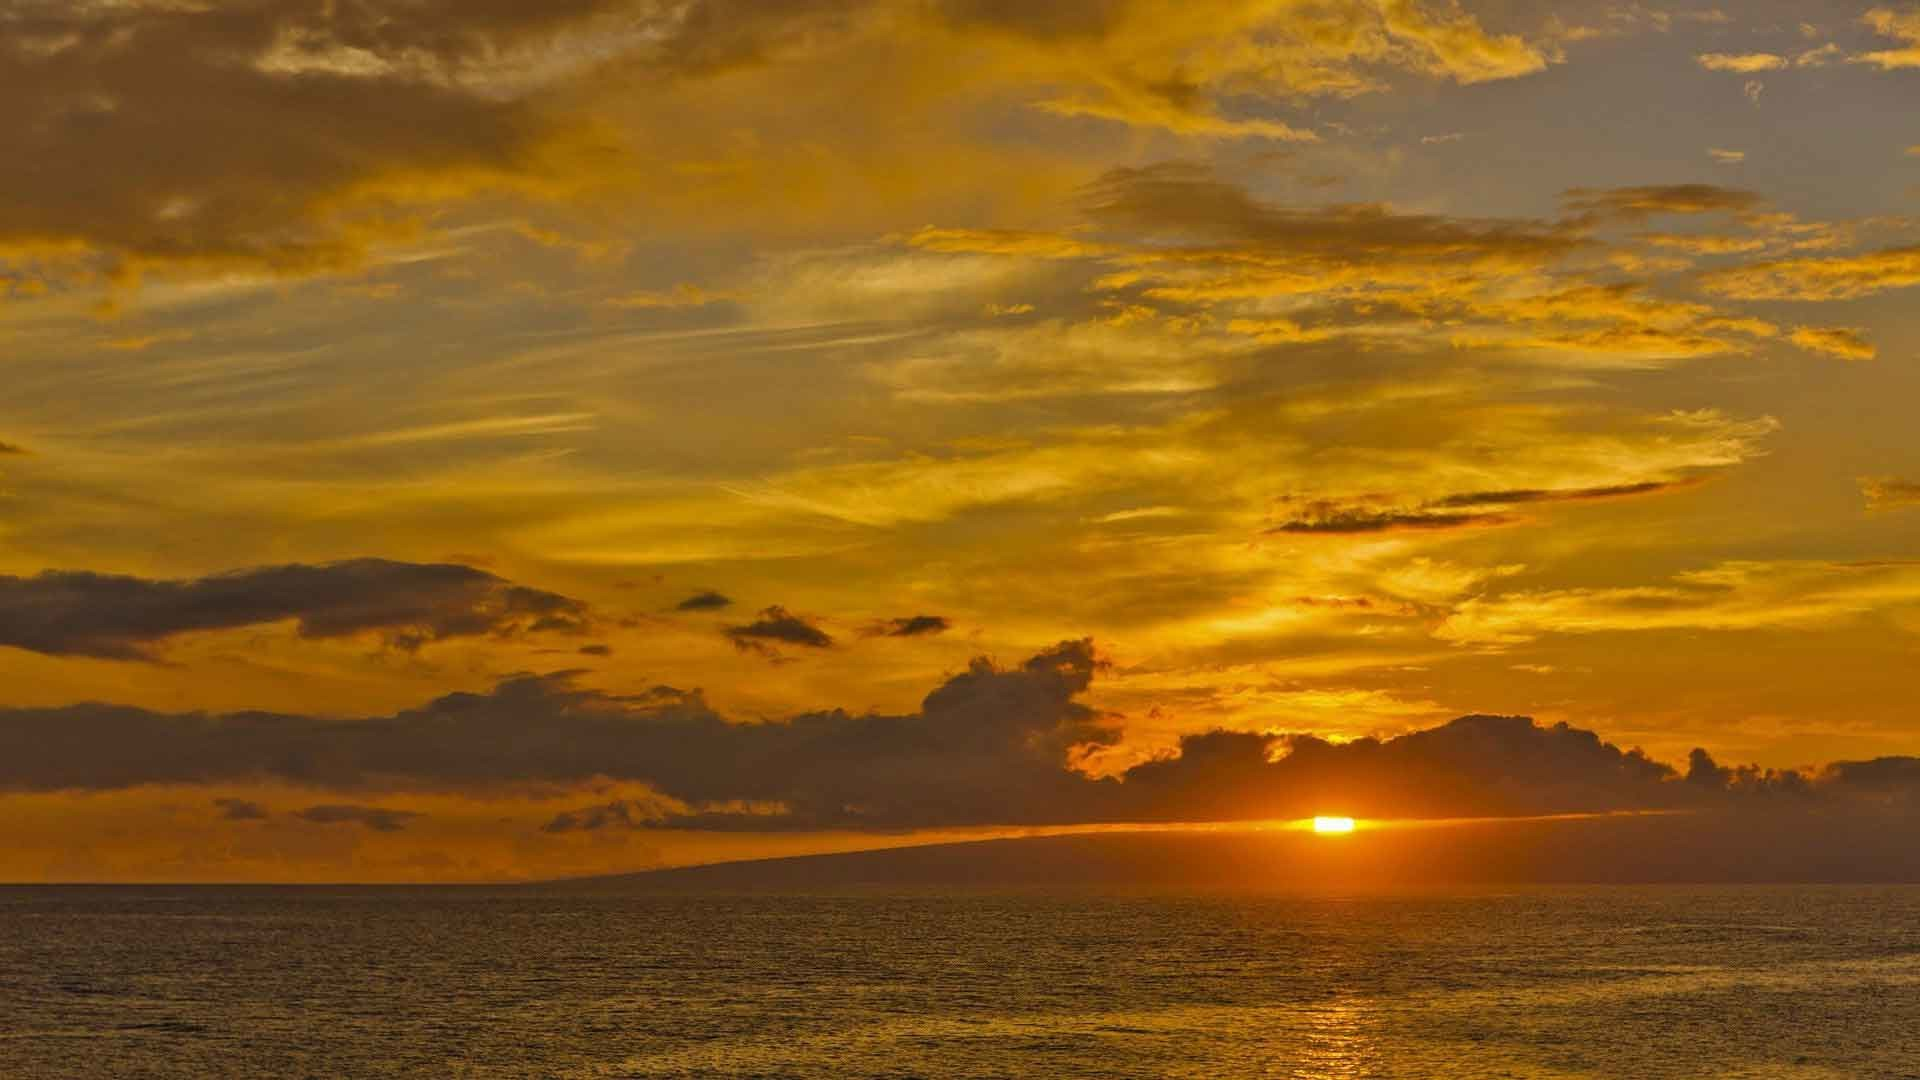 Kauai Wallpapers 54 Images: Hawaii Sunset Wallpaper (54+ Pictures